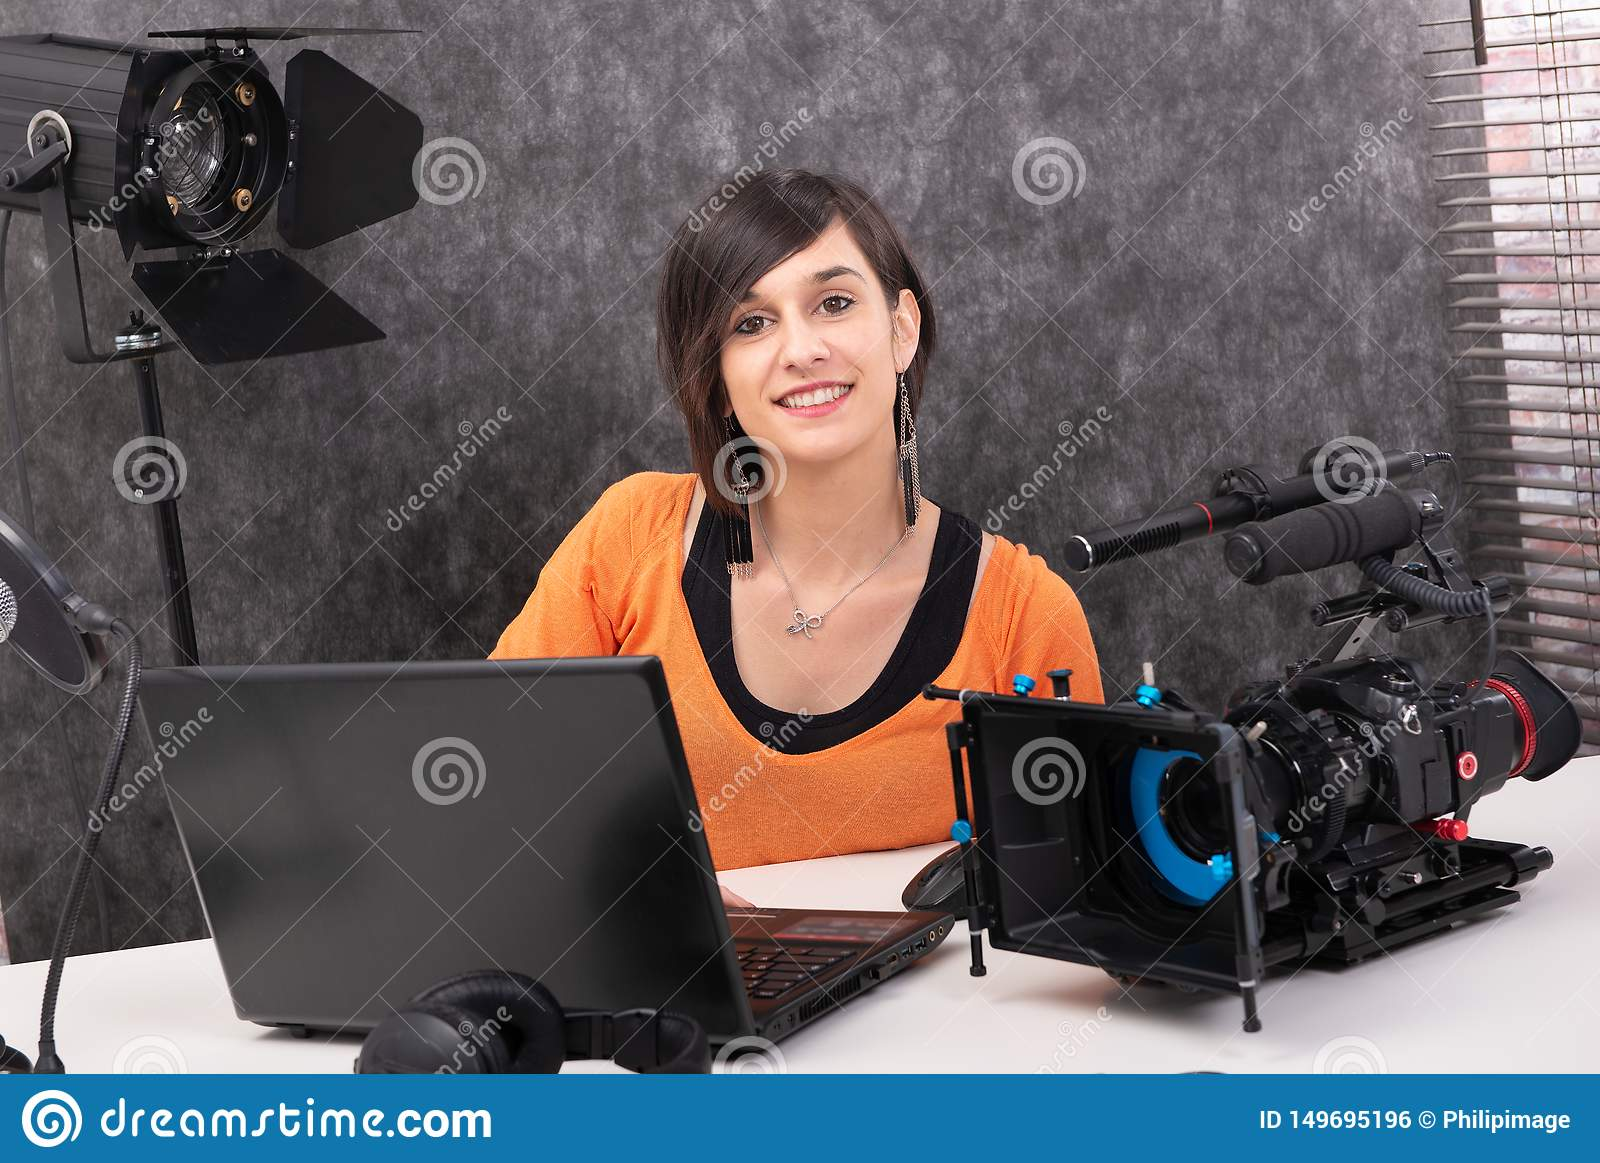 Young woman video editor working in studio